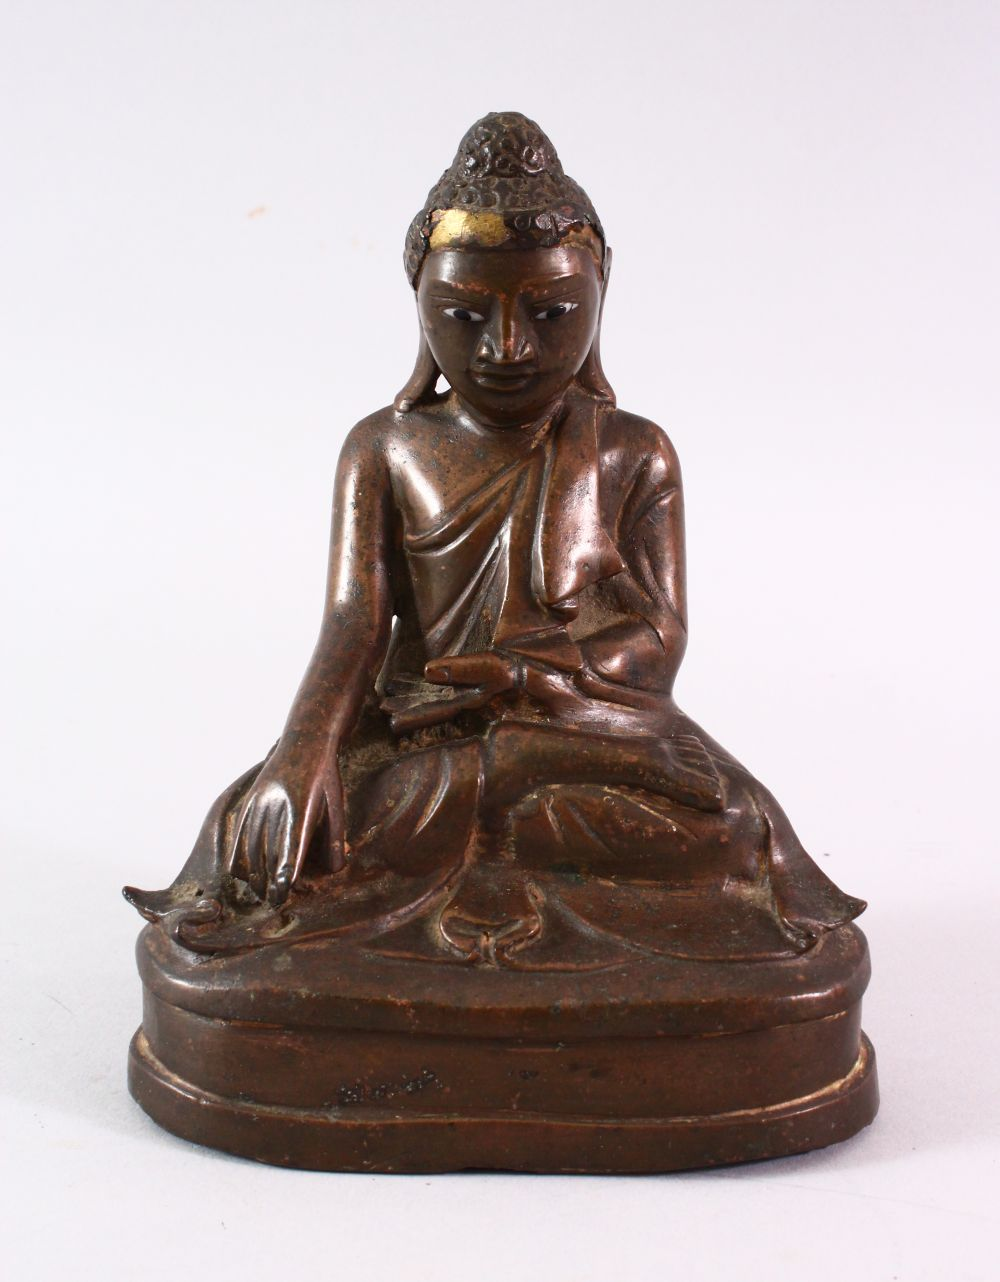 A BRONZE BUDDHA with glass inset eyes, 16cm high.